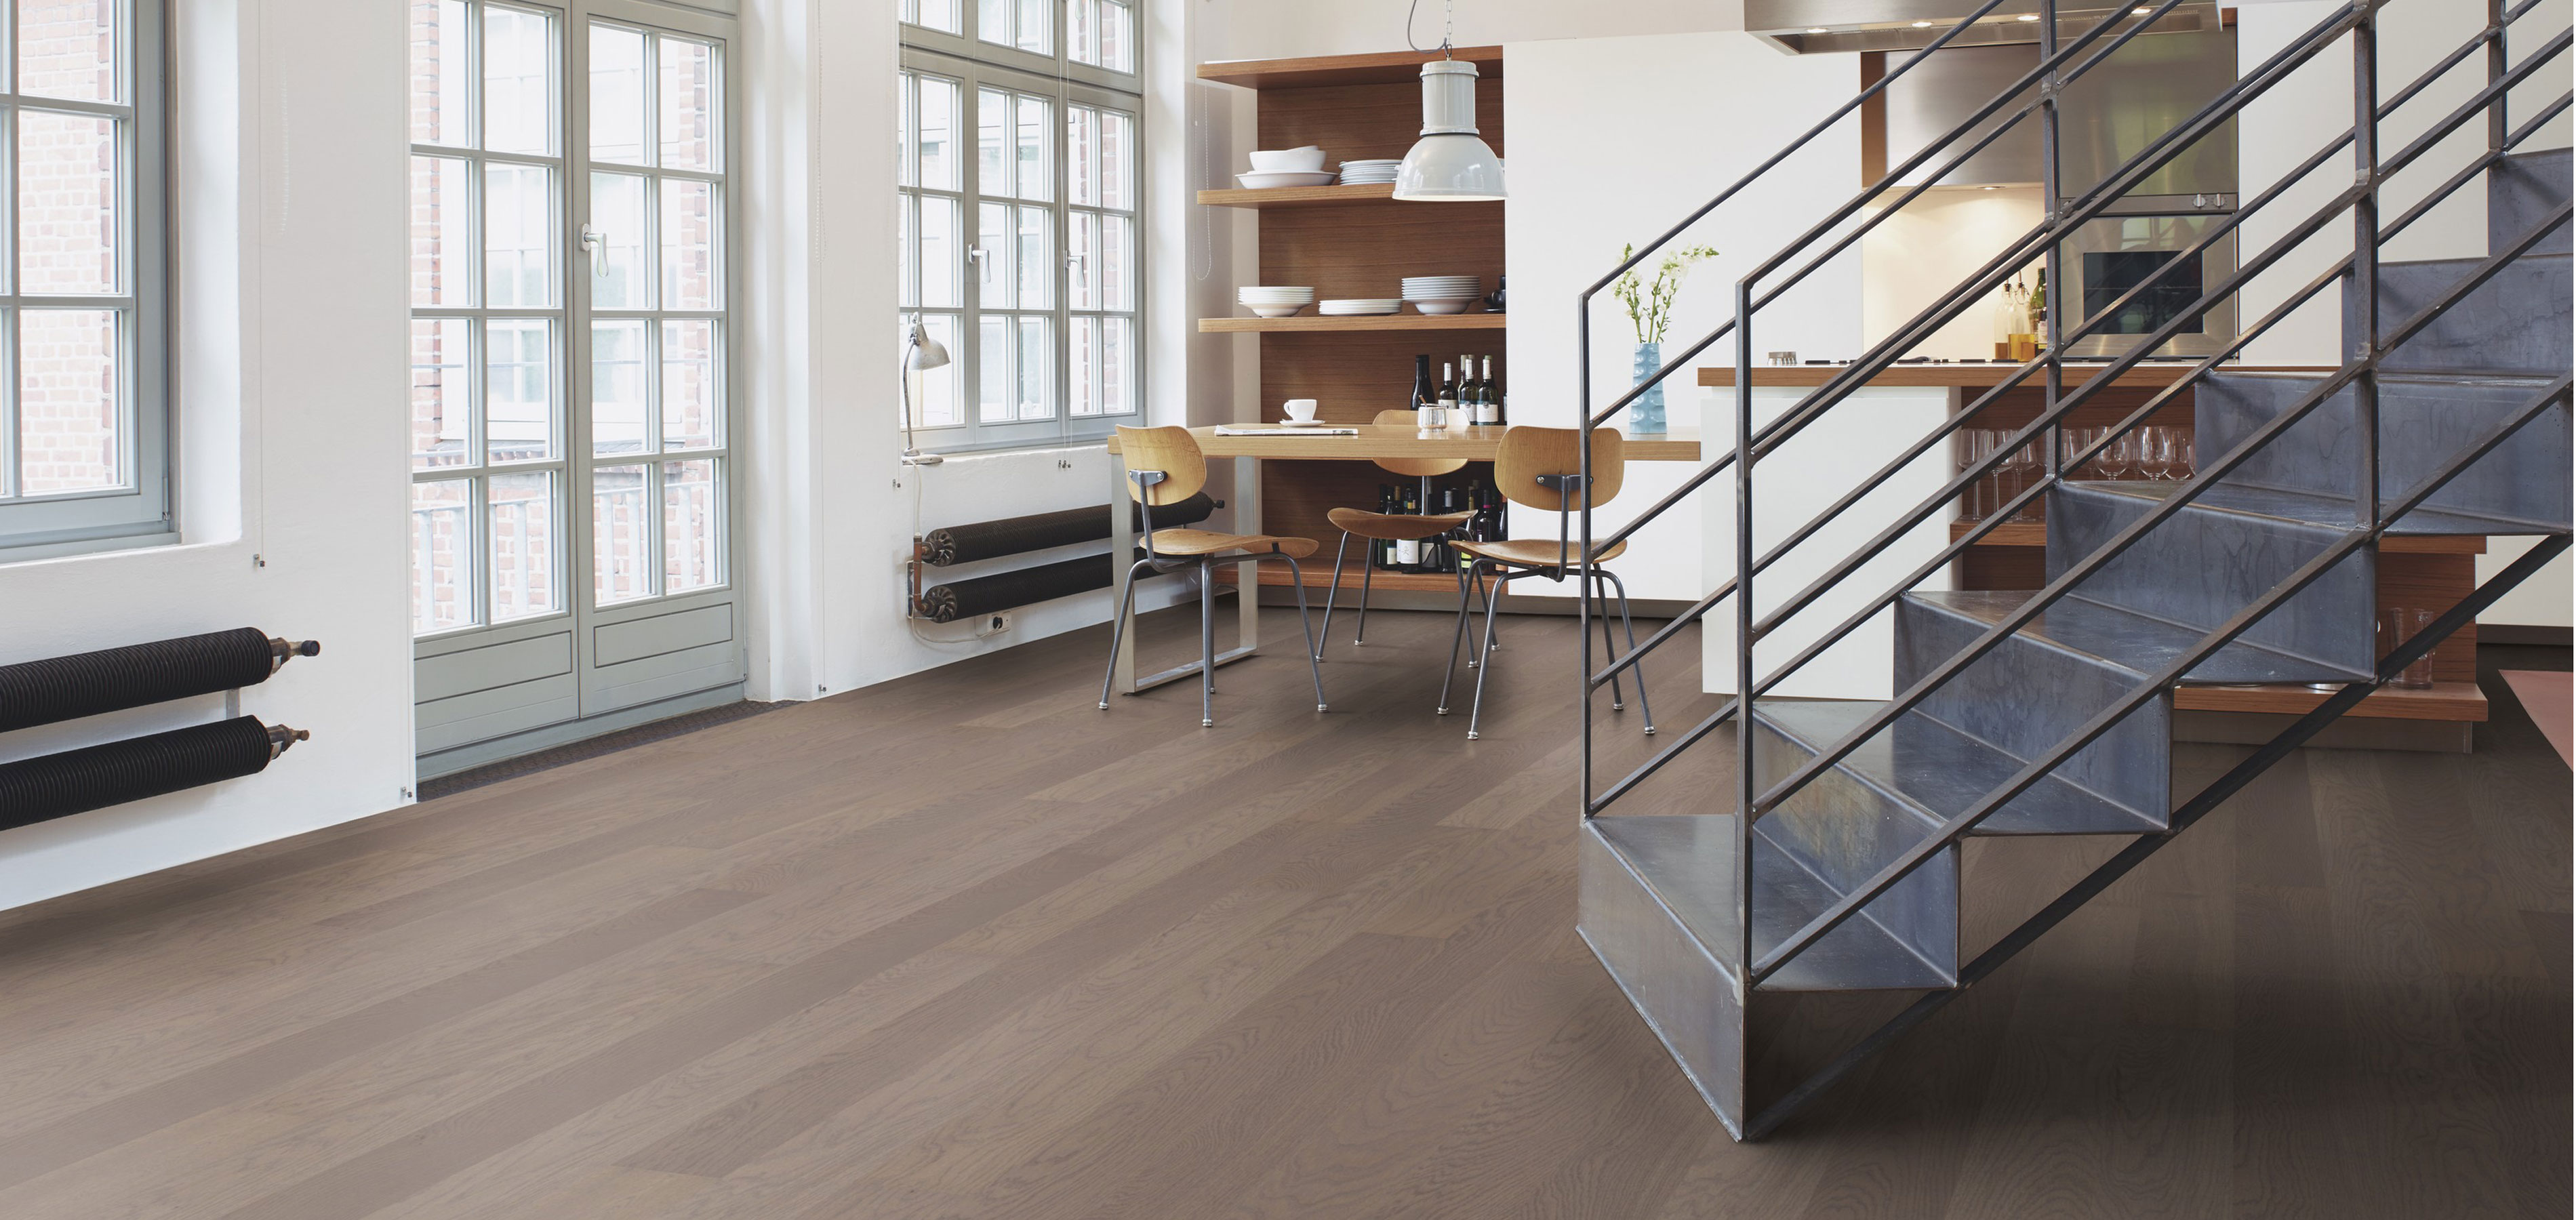 Boen Flooring Oak Arizona Plank Kapriz Hardwood Floors